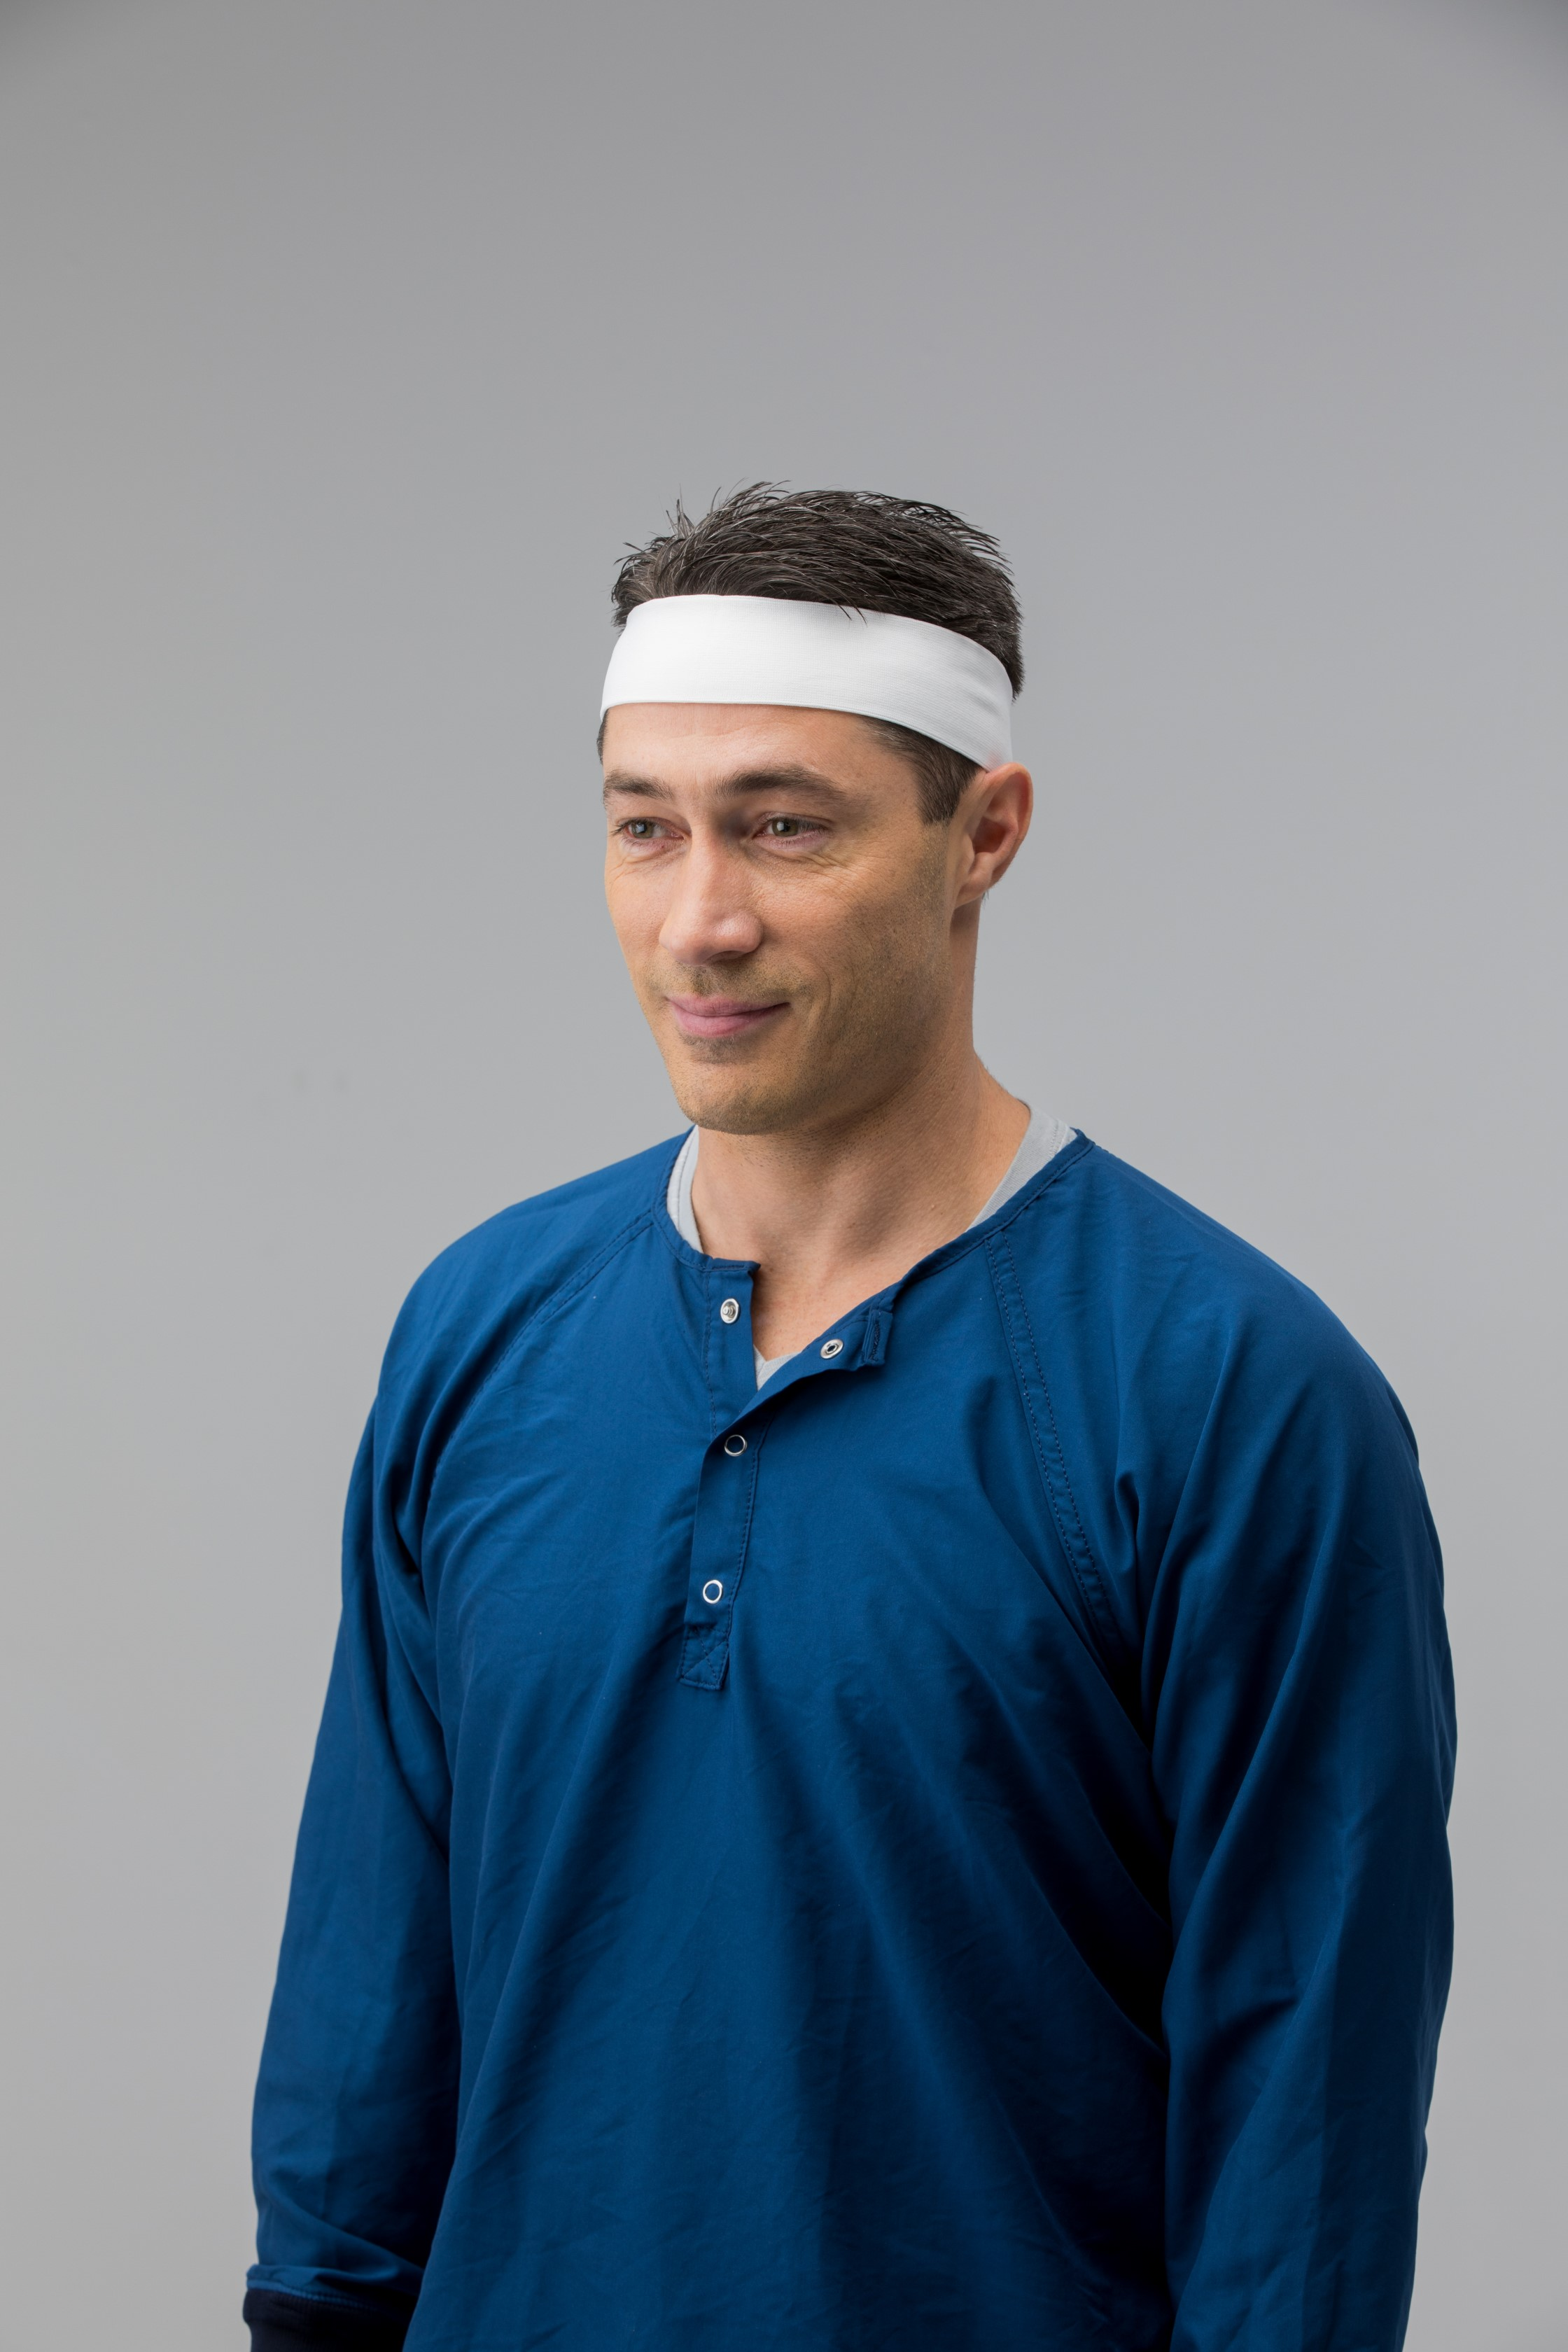 Sweat-less Cleanroom Headband - SL-01-L